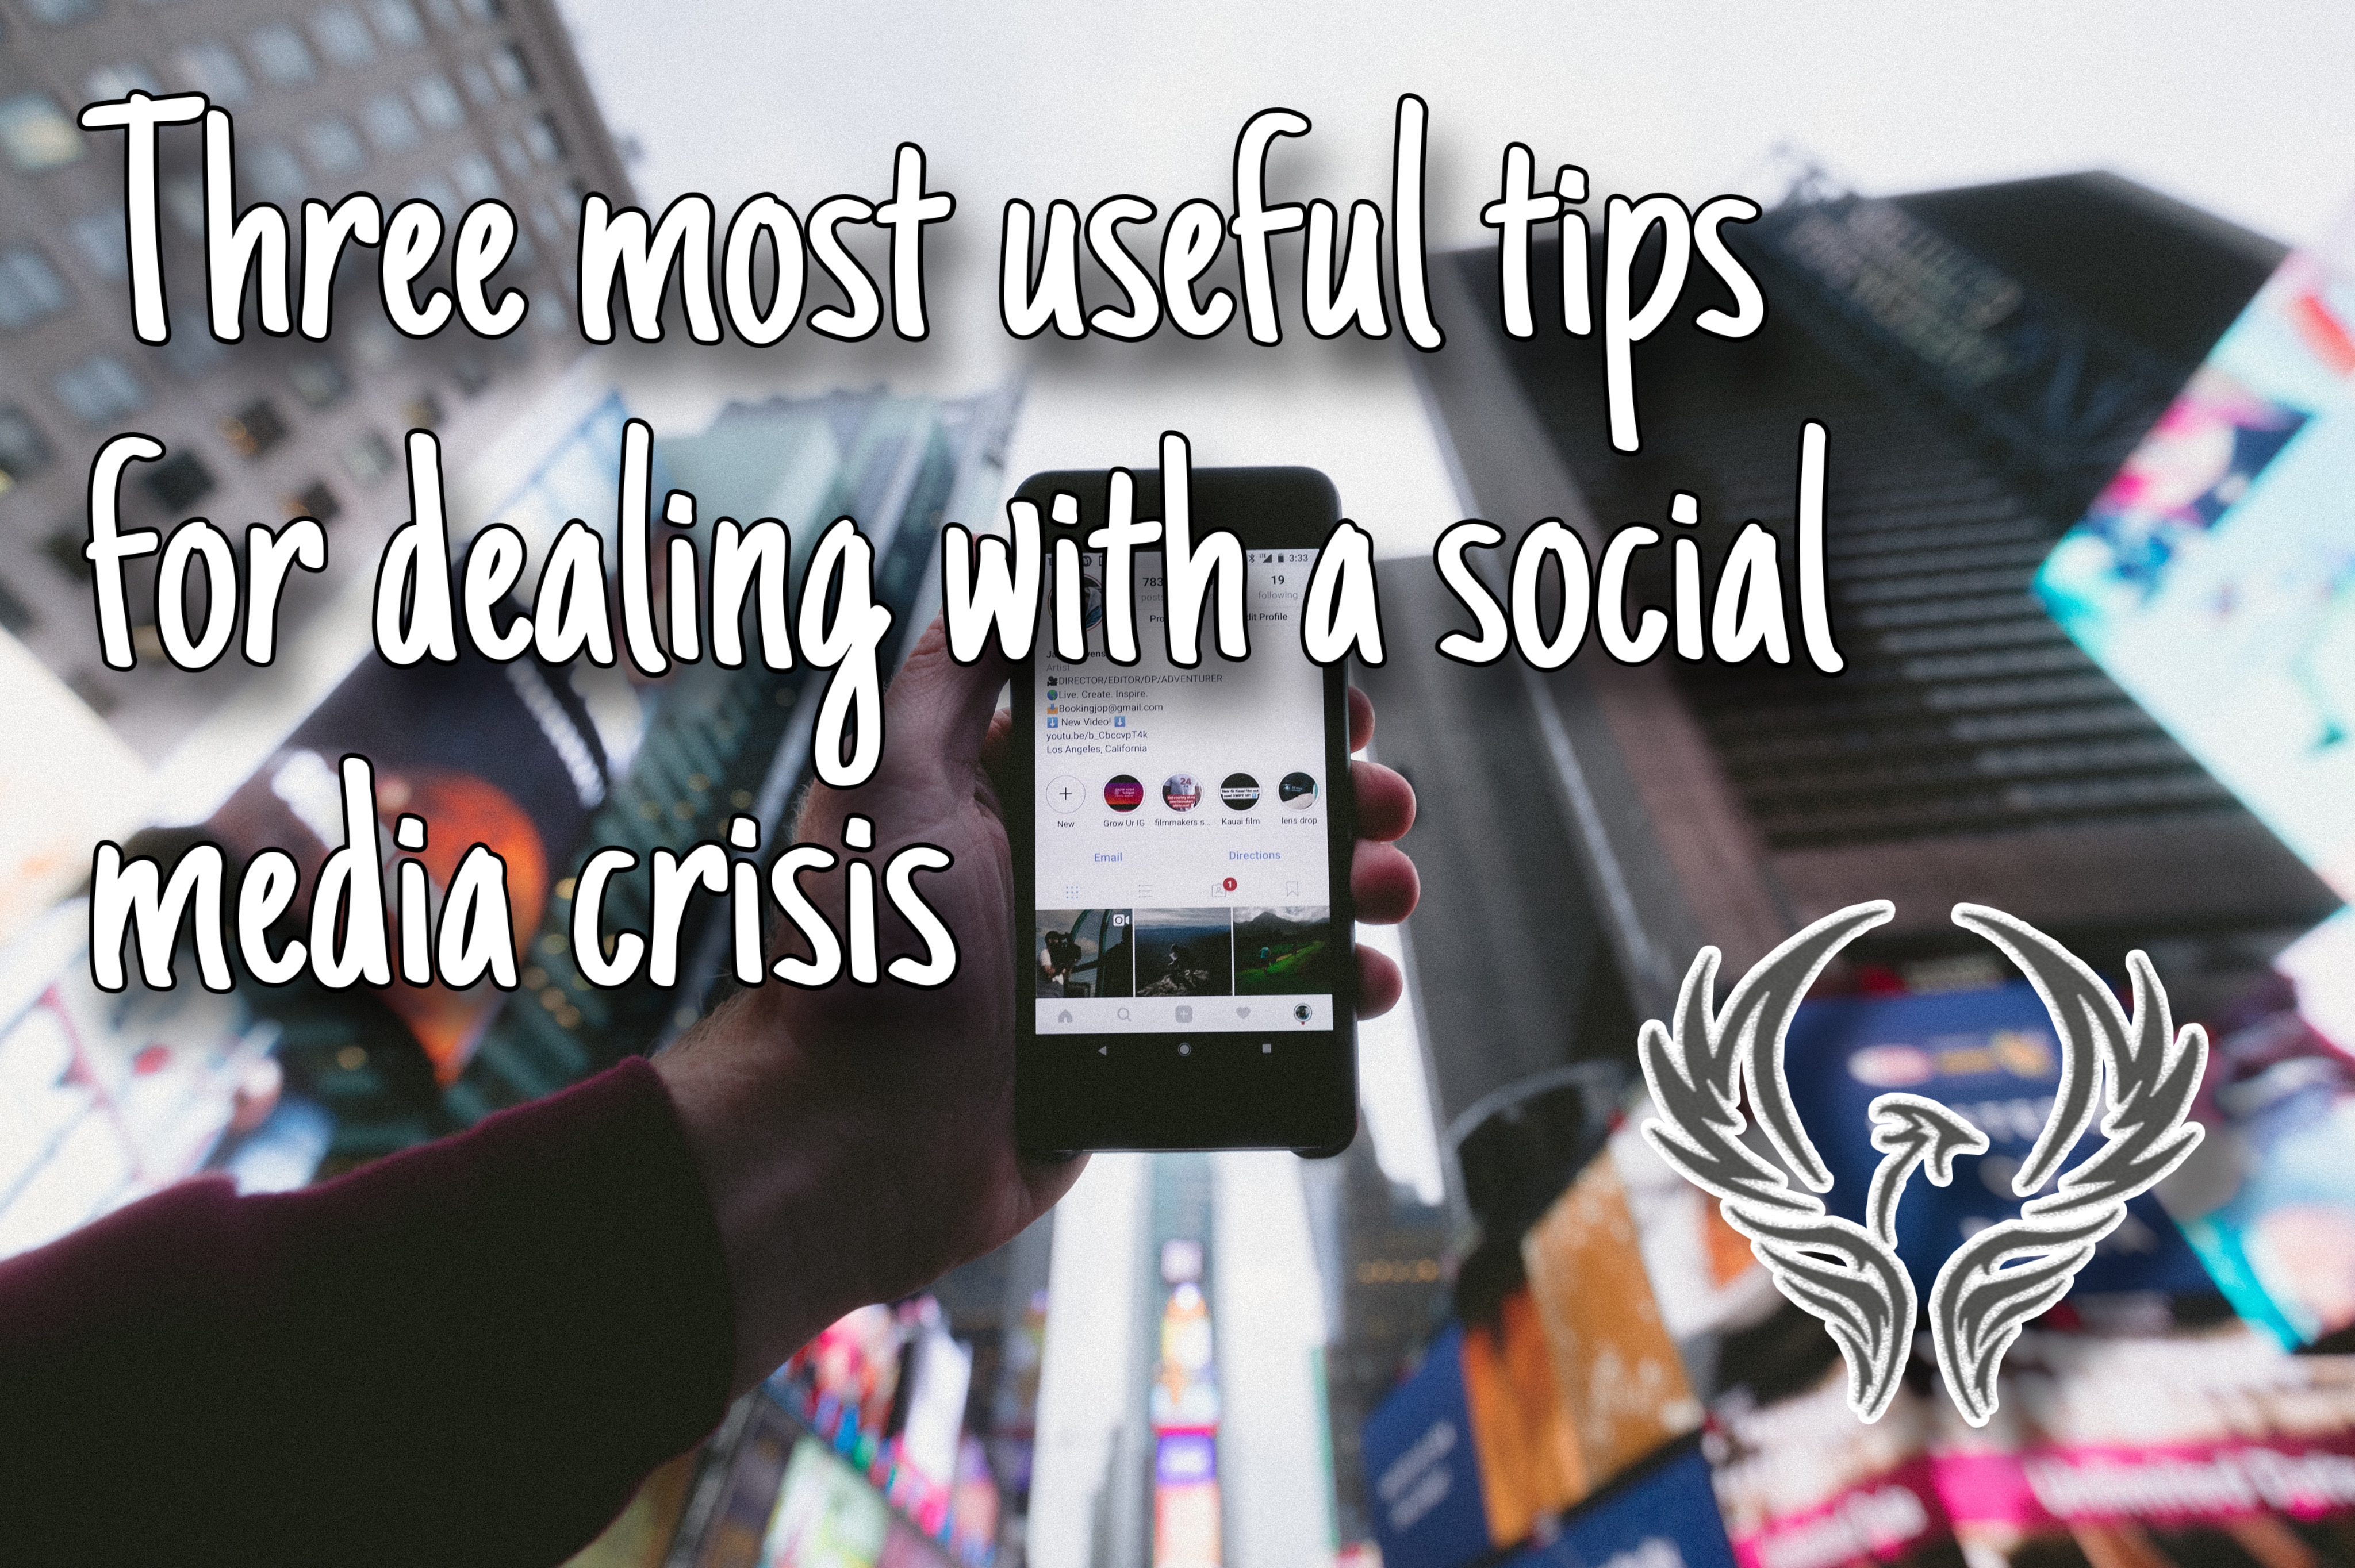 Three most useful tips for dealing with a social media crisis - Chris TDL